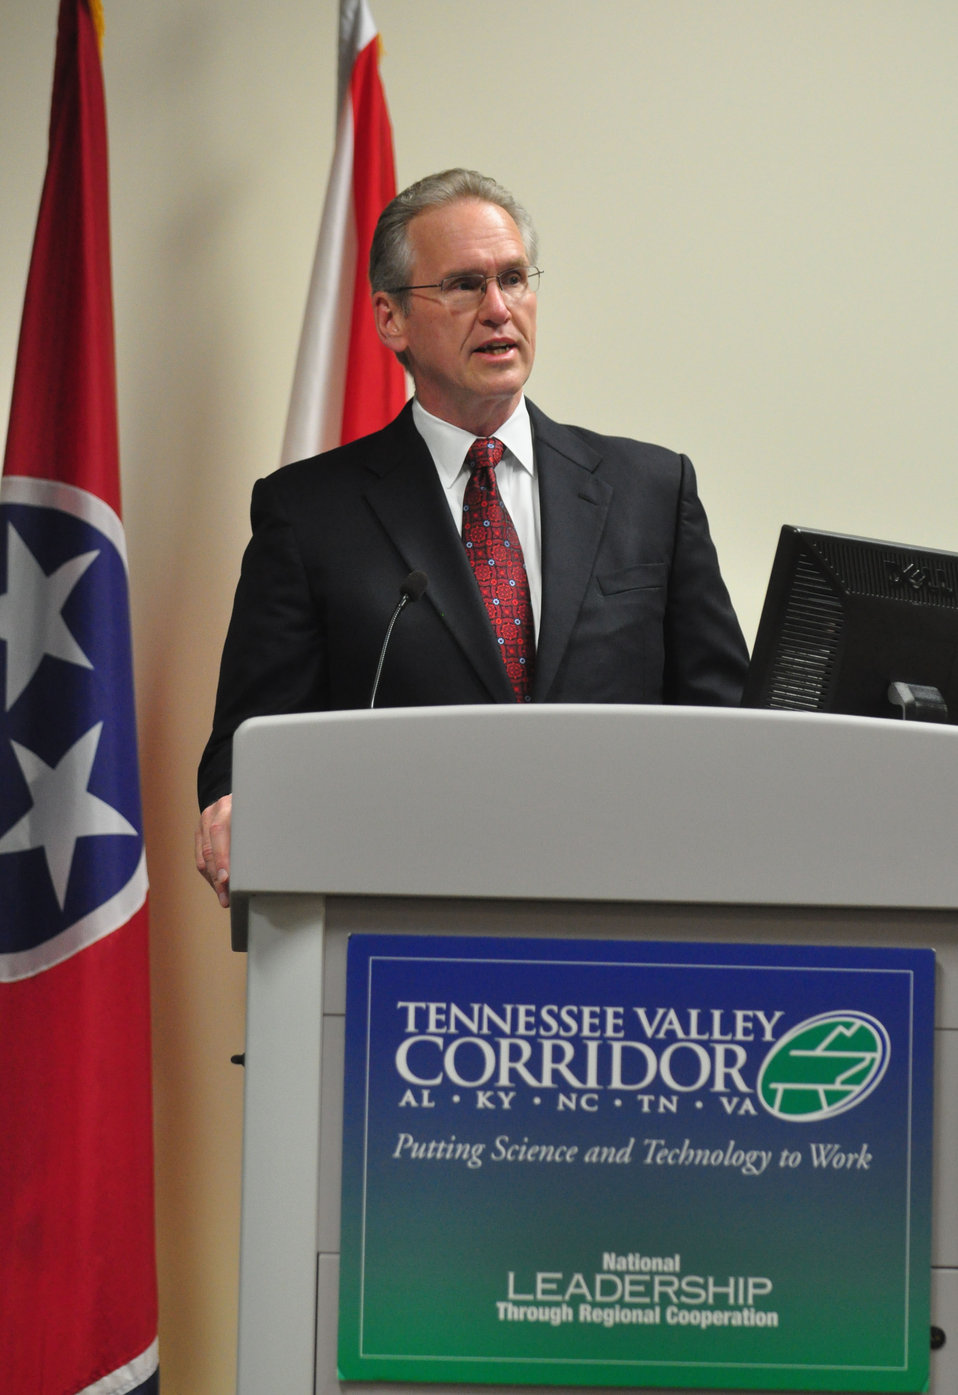 Tennessee Valley Corridor Summit Oak Ridge